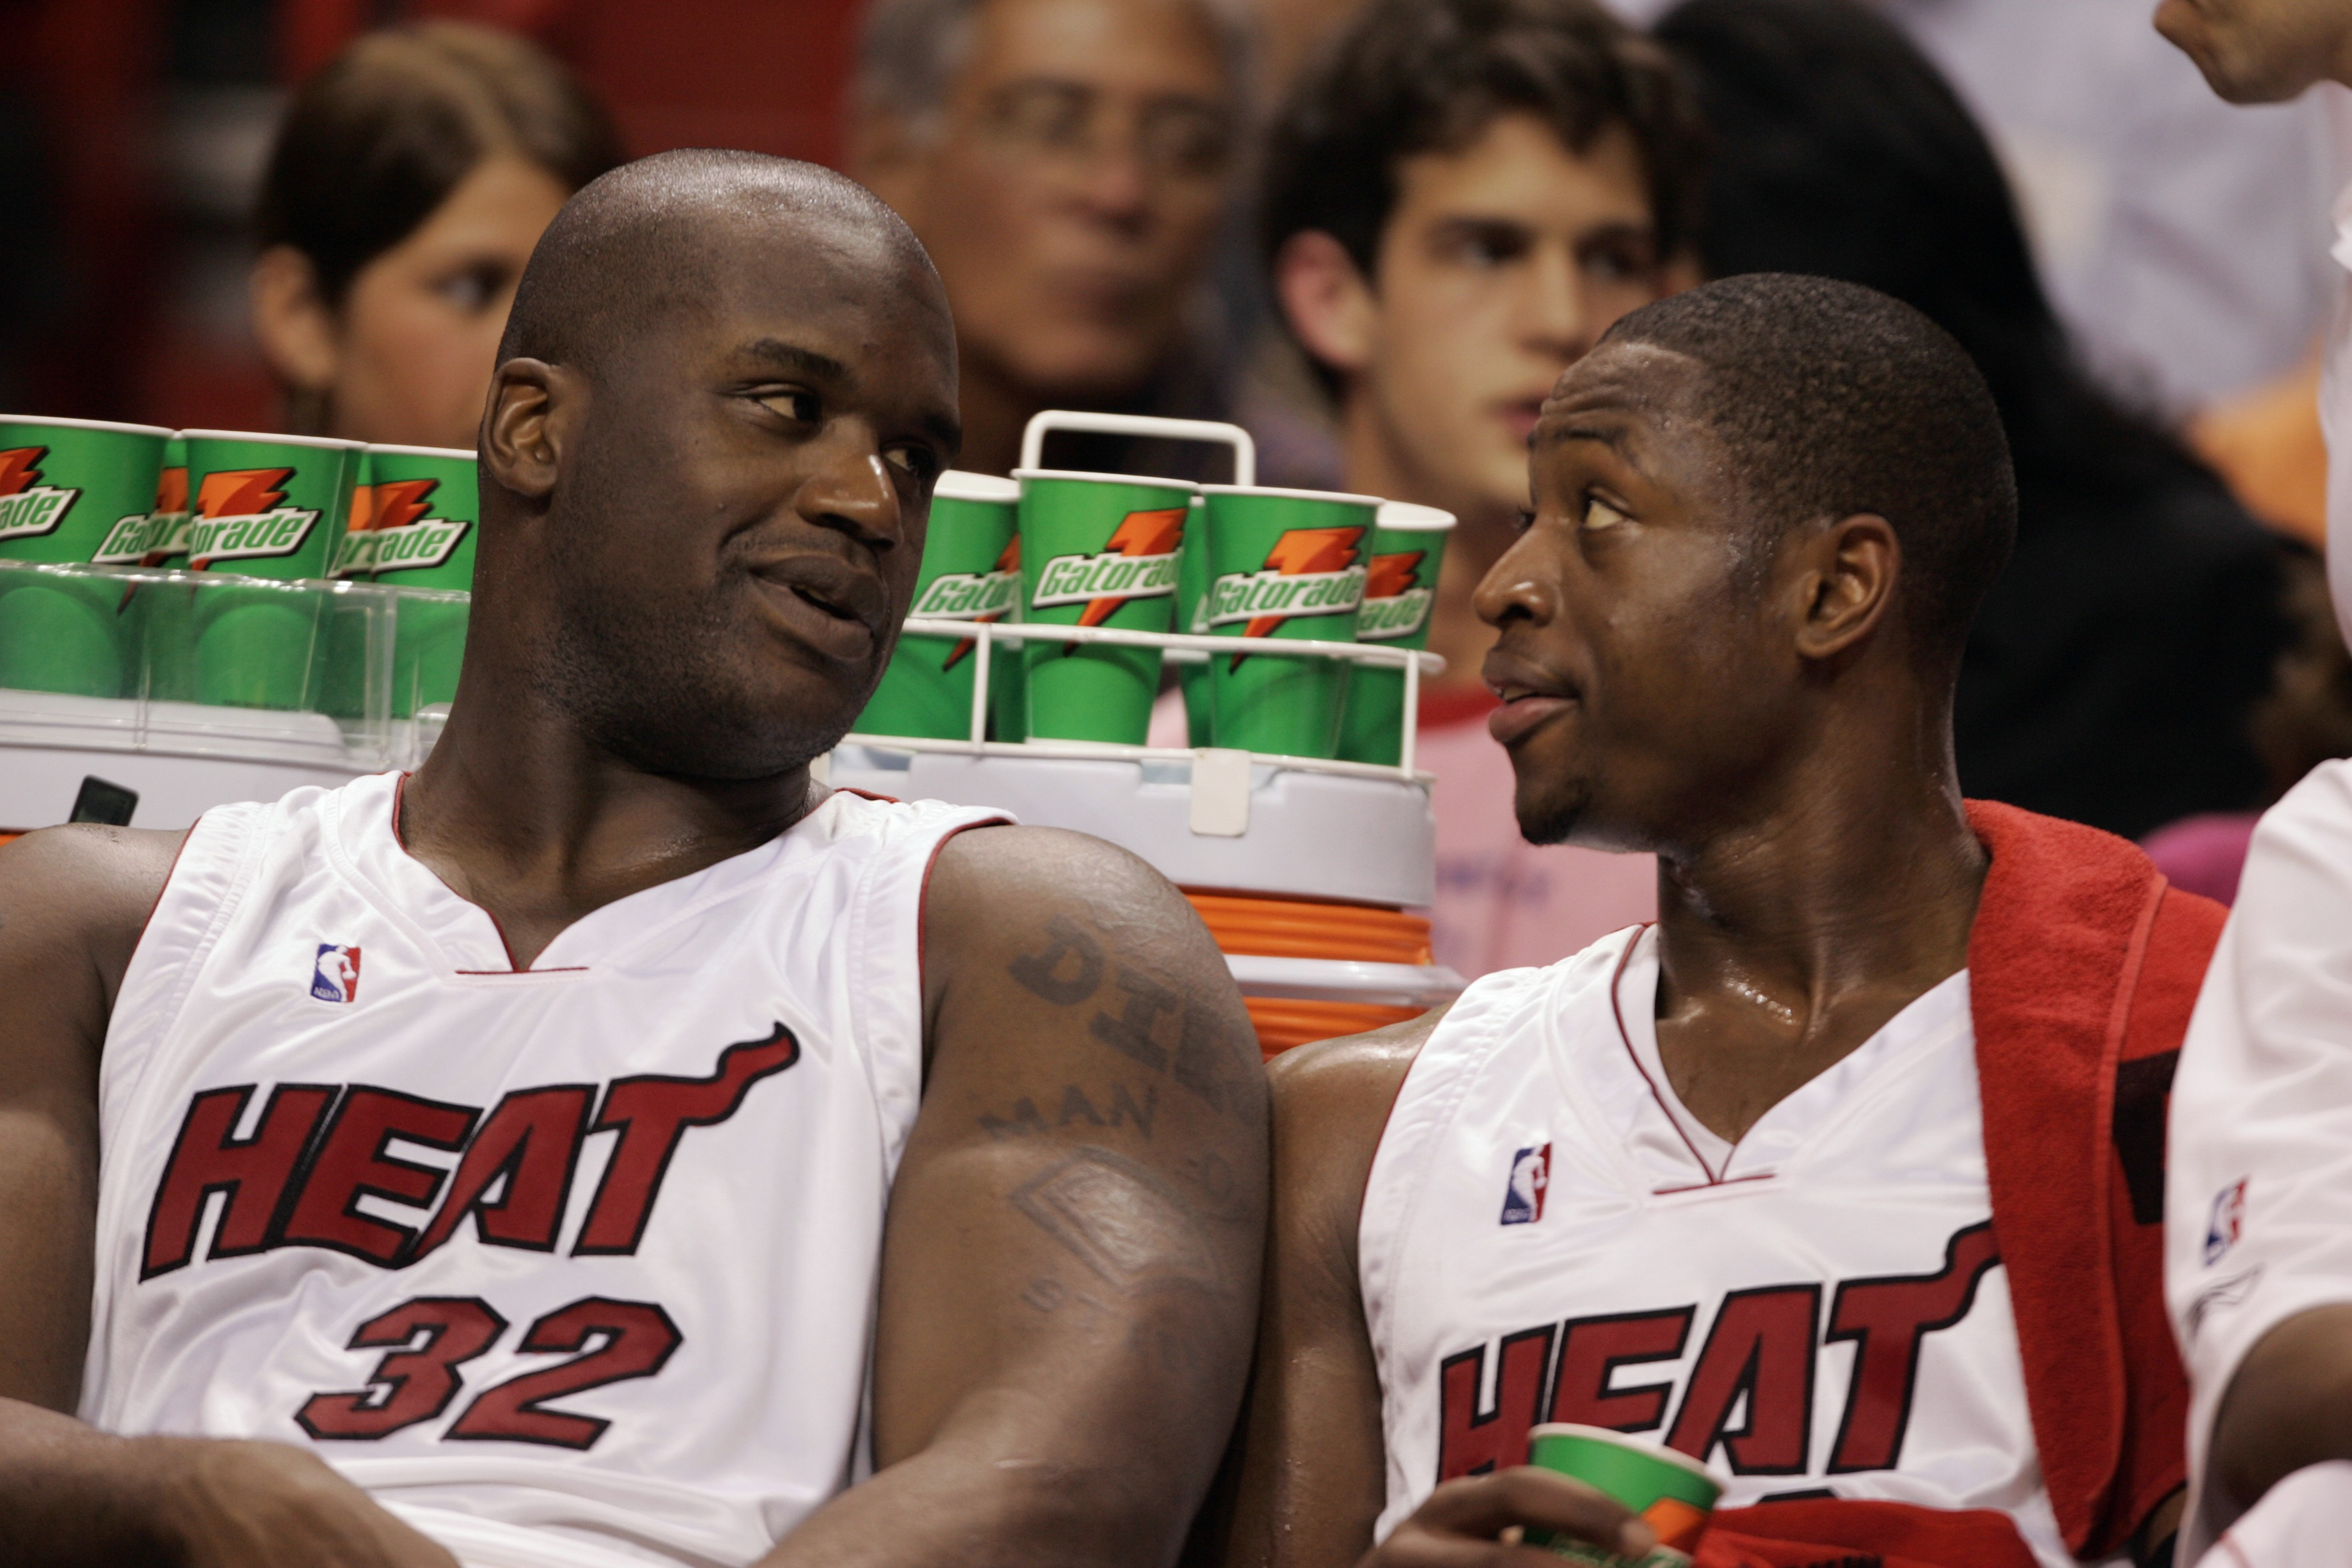 UNITED STATES - MARCH 07: Basketball: Closeup of Miami Heat Shaquille O'Neal (32) and Alonzo Mourning (33) on bench during game vs Philadelphia 76ers, Miami, FL 3/7/2005 (Photo by Bill Frakes/Sports Illustrated/Getty Images) (SetNumber: X73001 TK1)